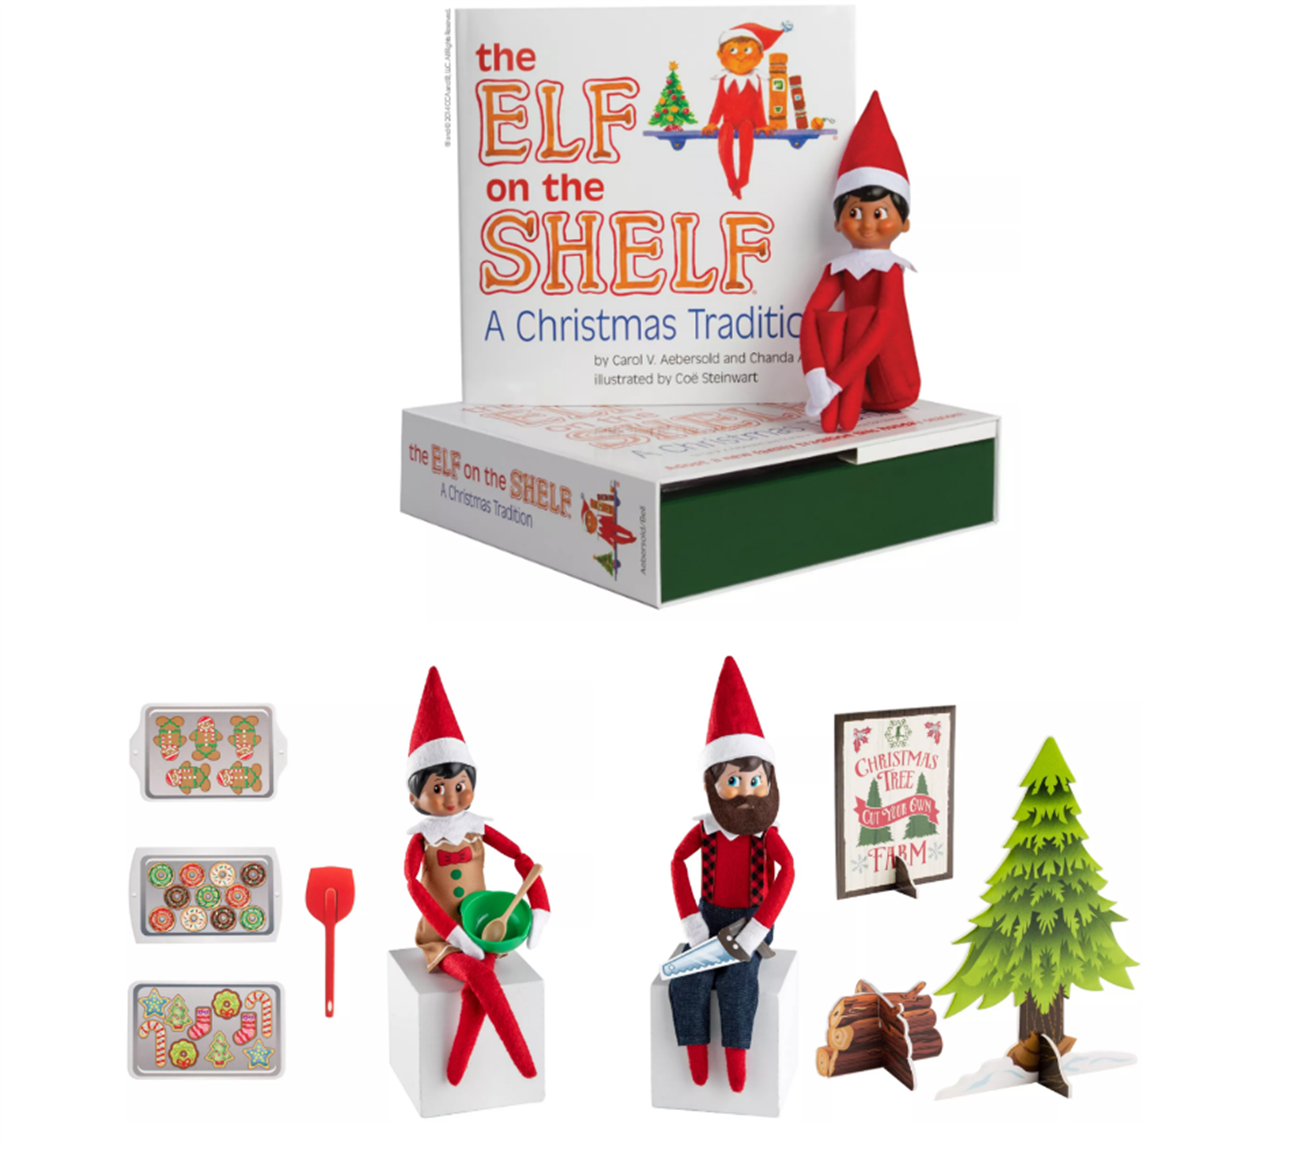 Elf on the Shelf Box Set + Two Packs of Clothes and Accessories For Only $39.95 + Free Shipping!